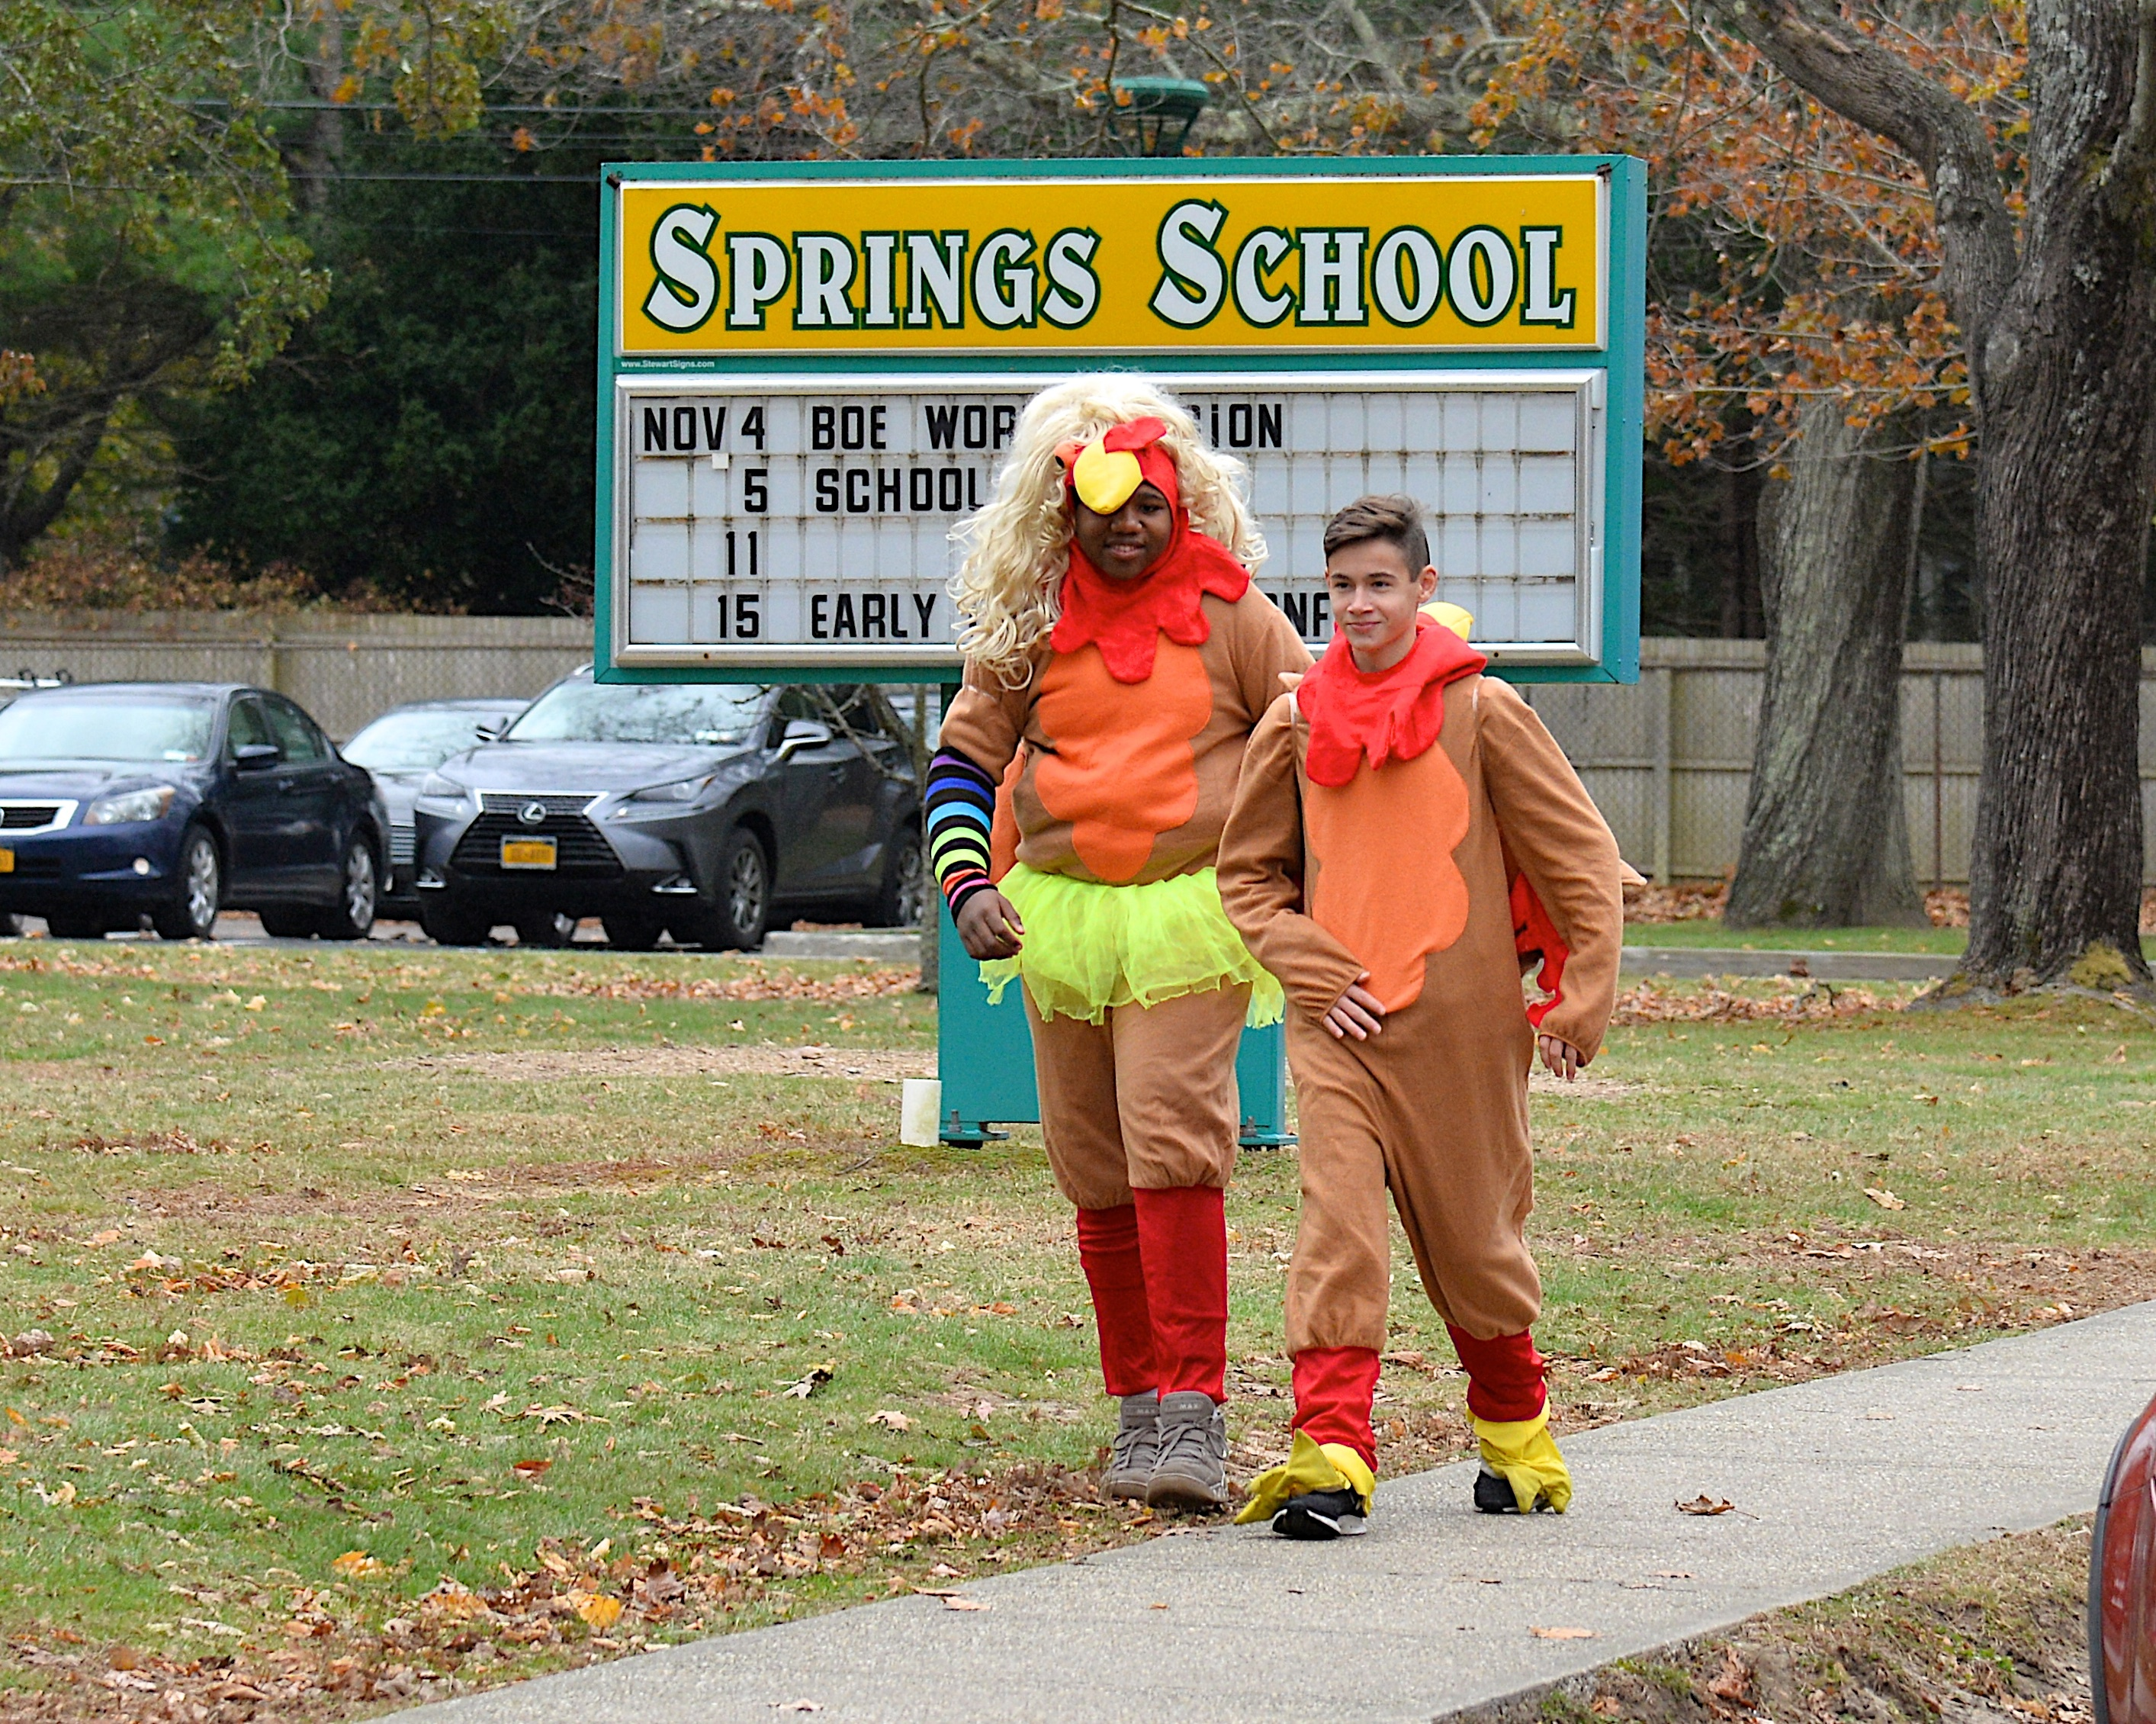 Springs School students and staff bust out the door on Monday morning for the Turkey Trot, to raise money for the school's swim program at the YMCA. KYRIL BROMLEY